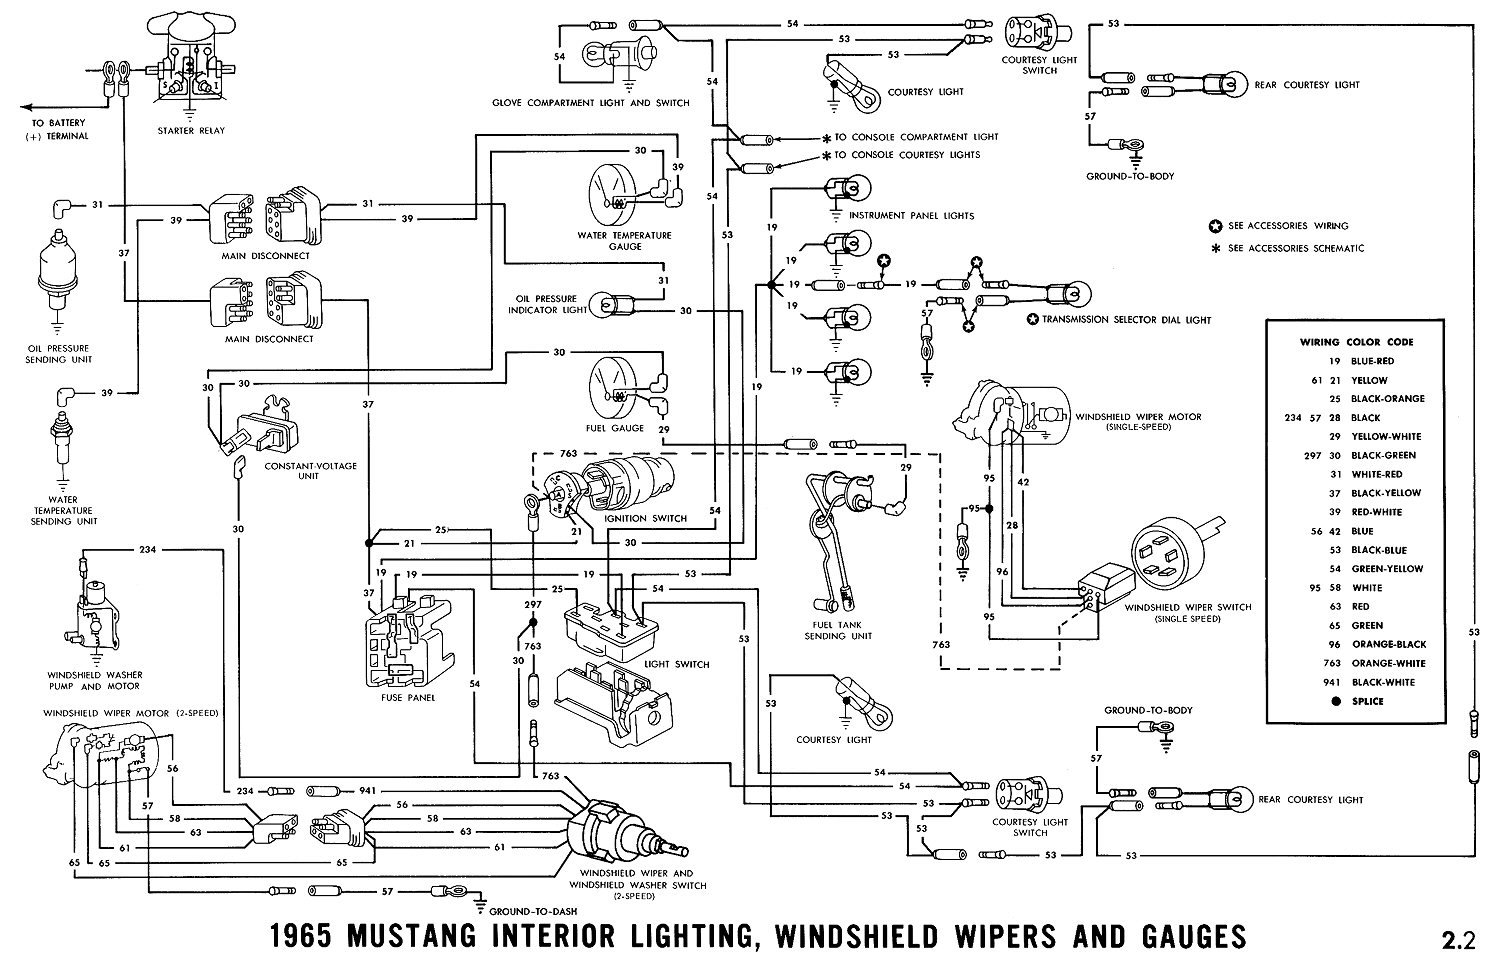 354697d1402370433 1970 mustang installing new radiator no temperature sensor interior lighting gauges wiring diagram for 1972 ford f100 the wiring diagram wiring diagram on a 1977 ford f100 radio at readyjetset.co